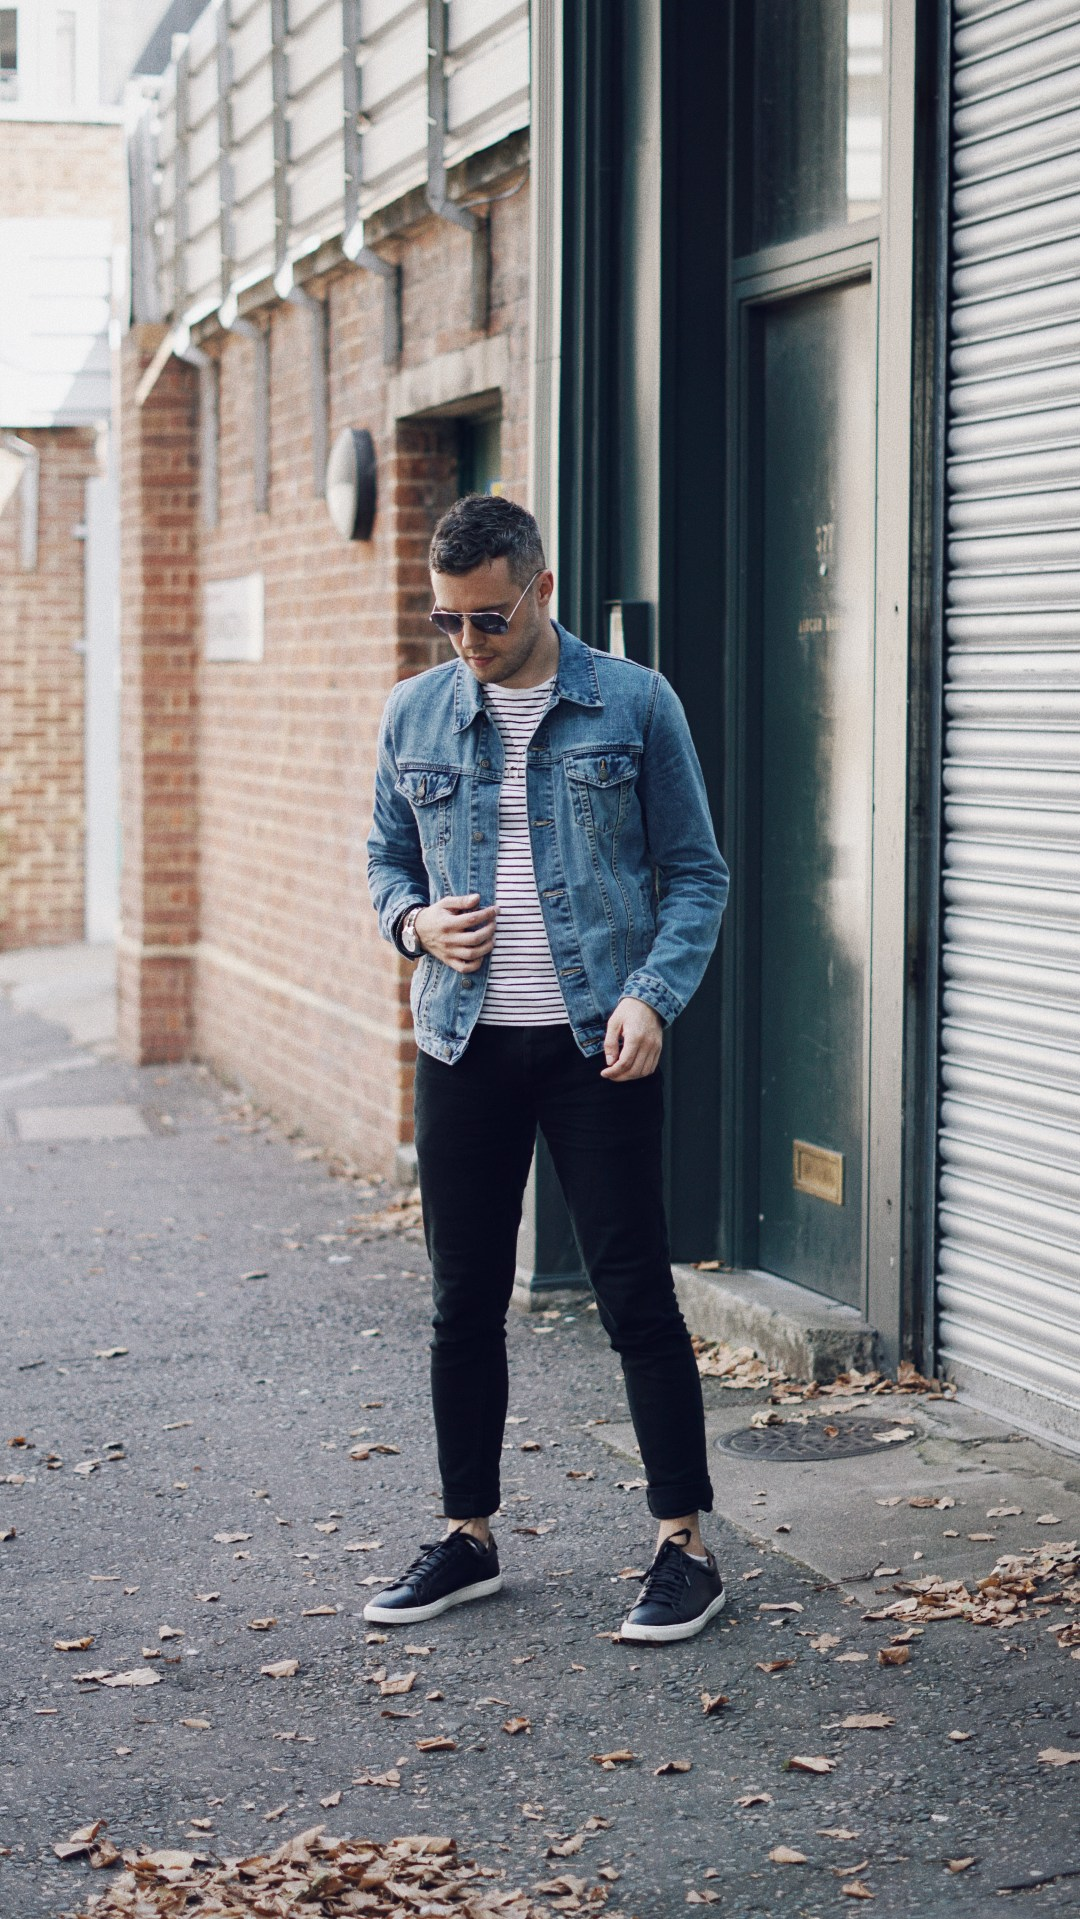 Next Notebook. Next Menswear. This week's best dressed instagrammers. Blog by Skirmantas Petraitis.